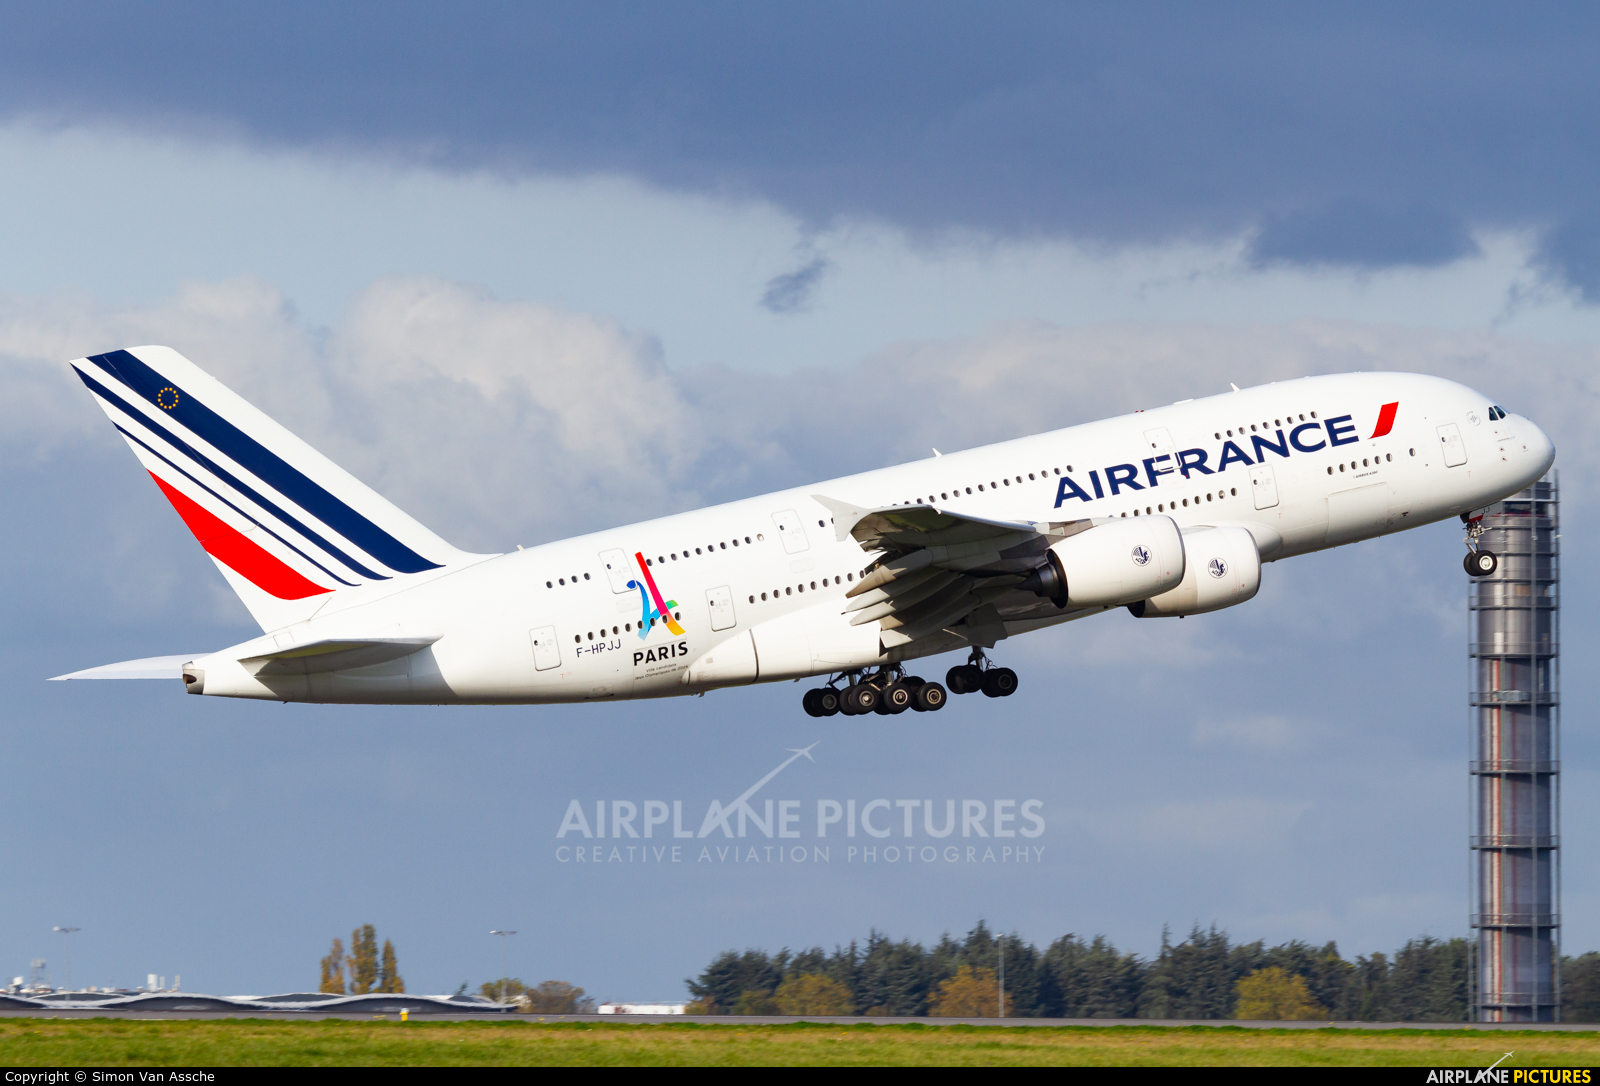 Air France F-HPJJ aircraft at Paris - Charles de Gaulle